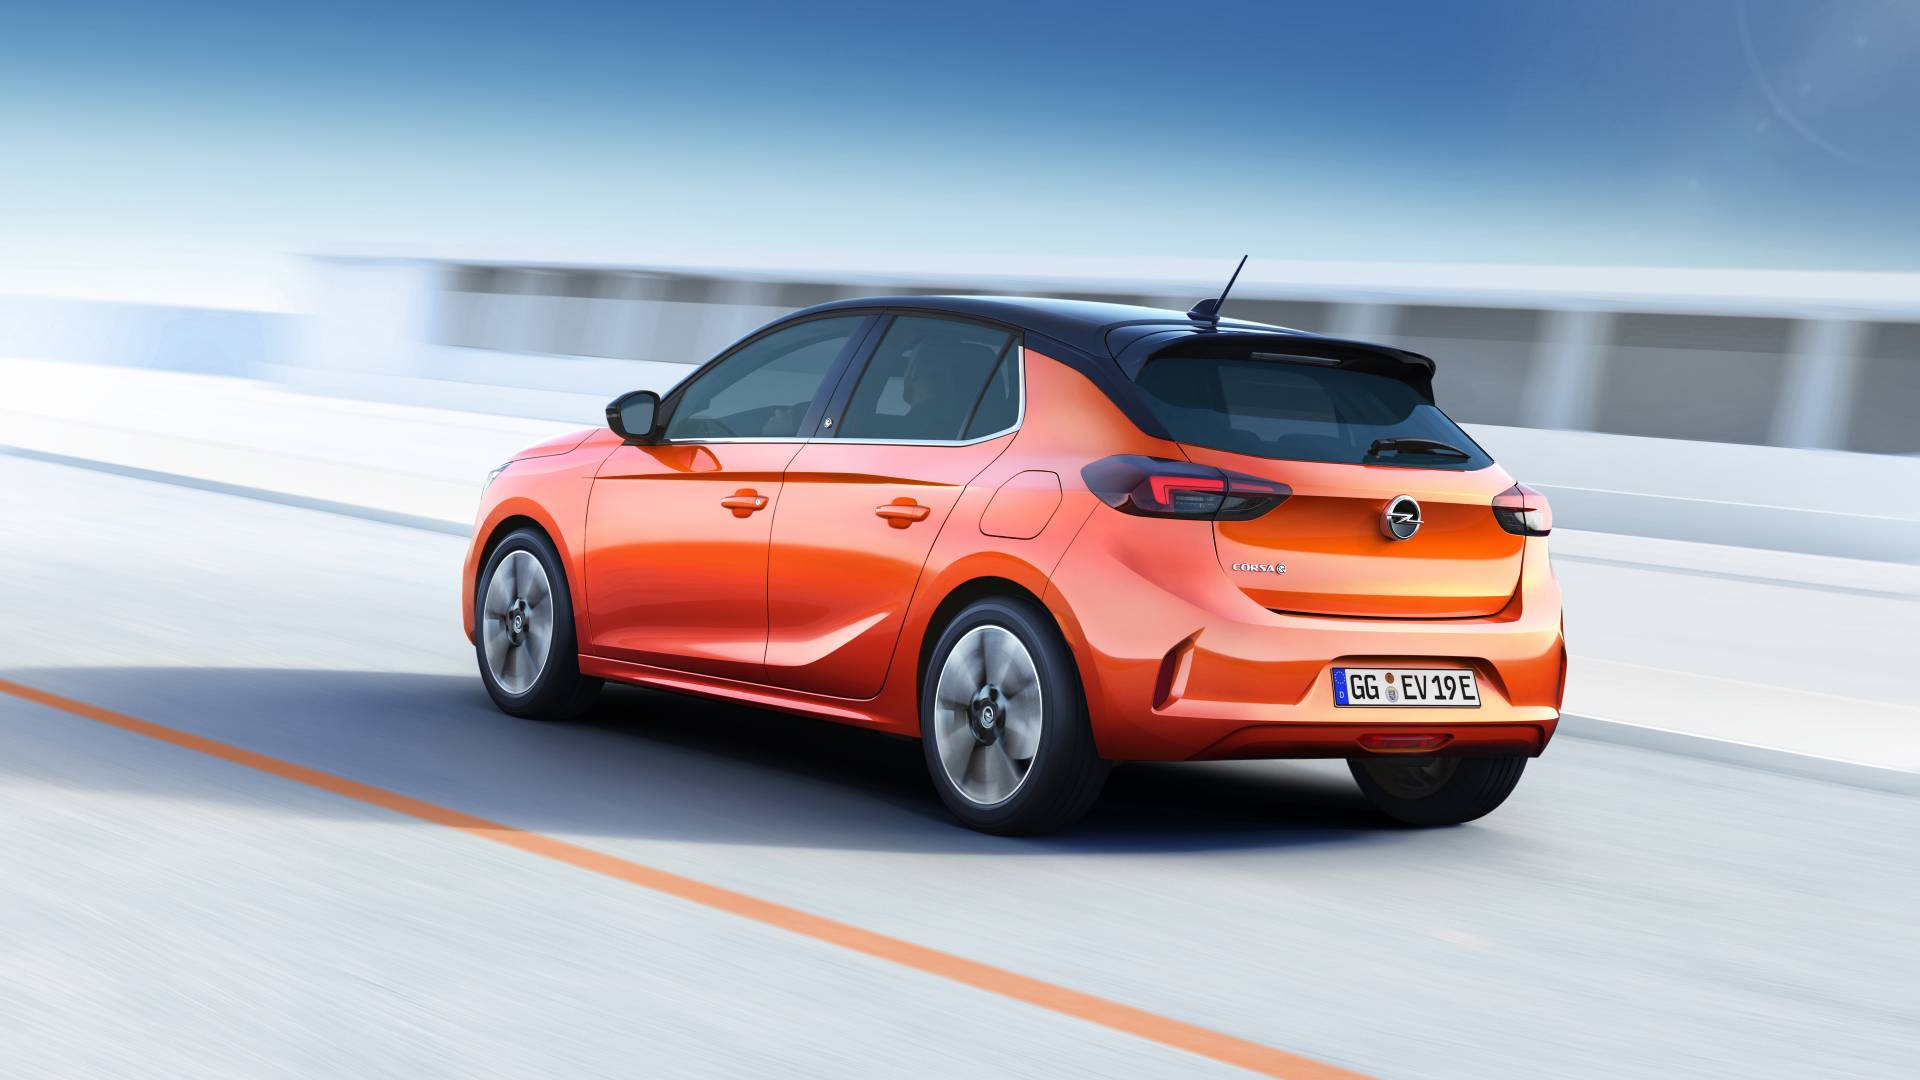 electric opel corsae priced from €29900 in germany £